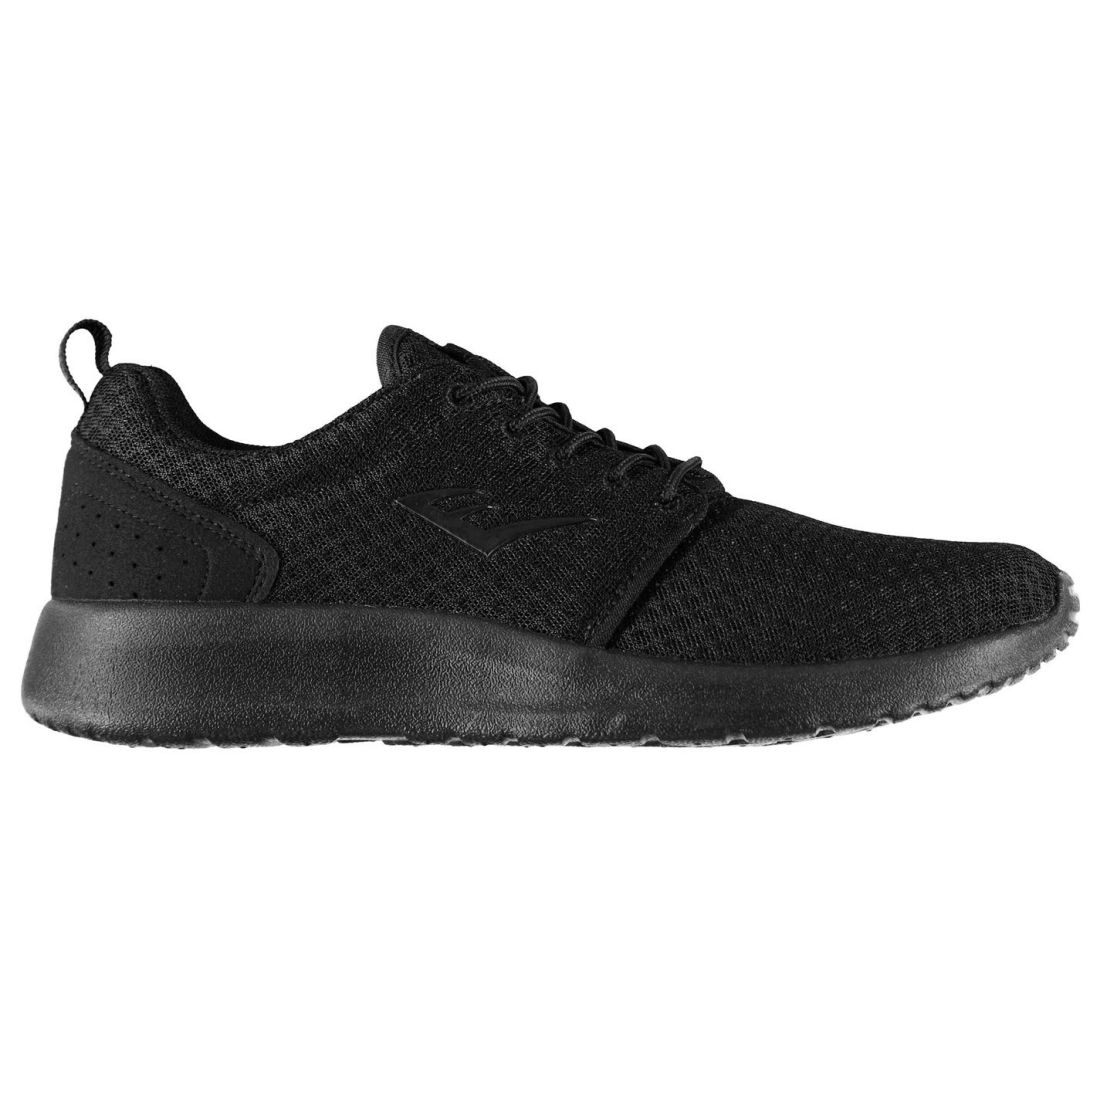 f5ae4292a6c34 Everlast Womens Sensei Run Trainers Lace Up Shoes Lightweight ...